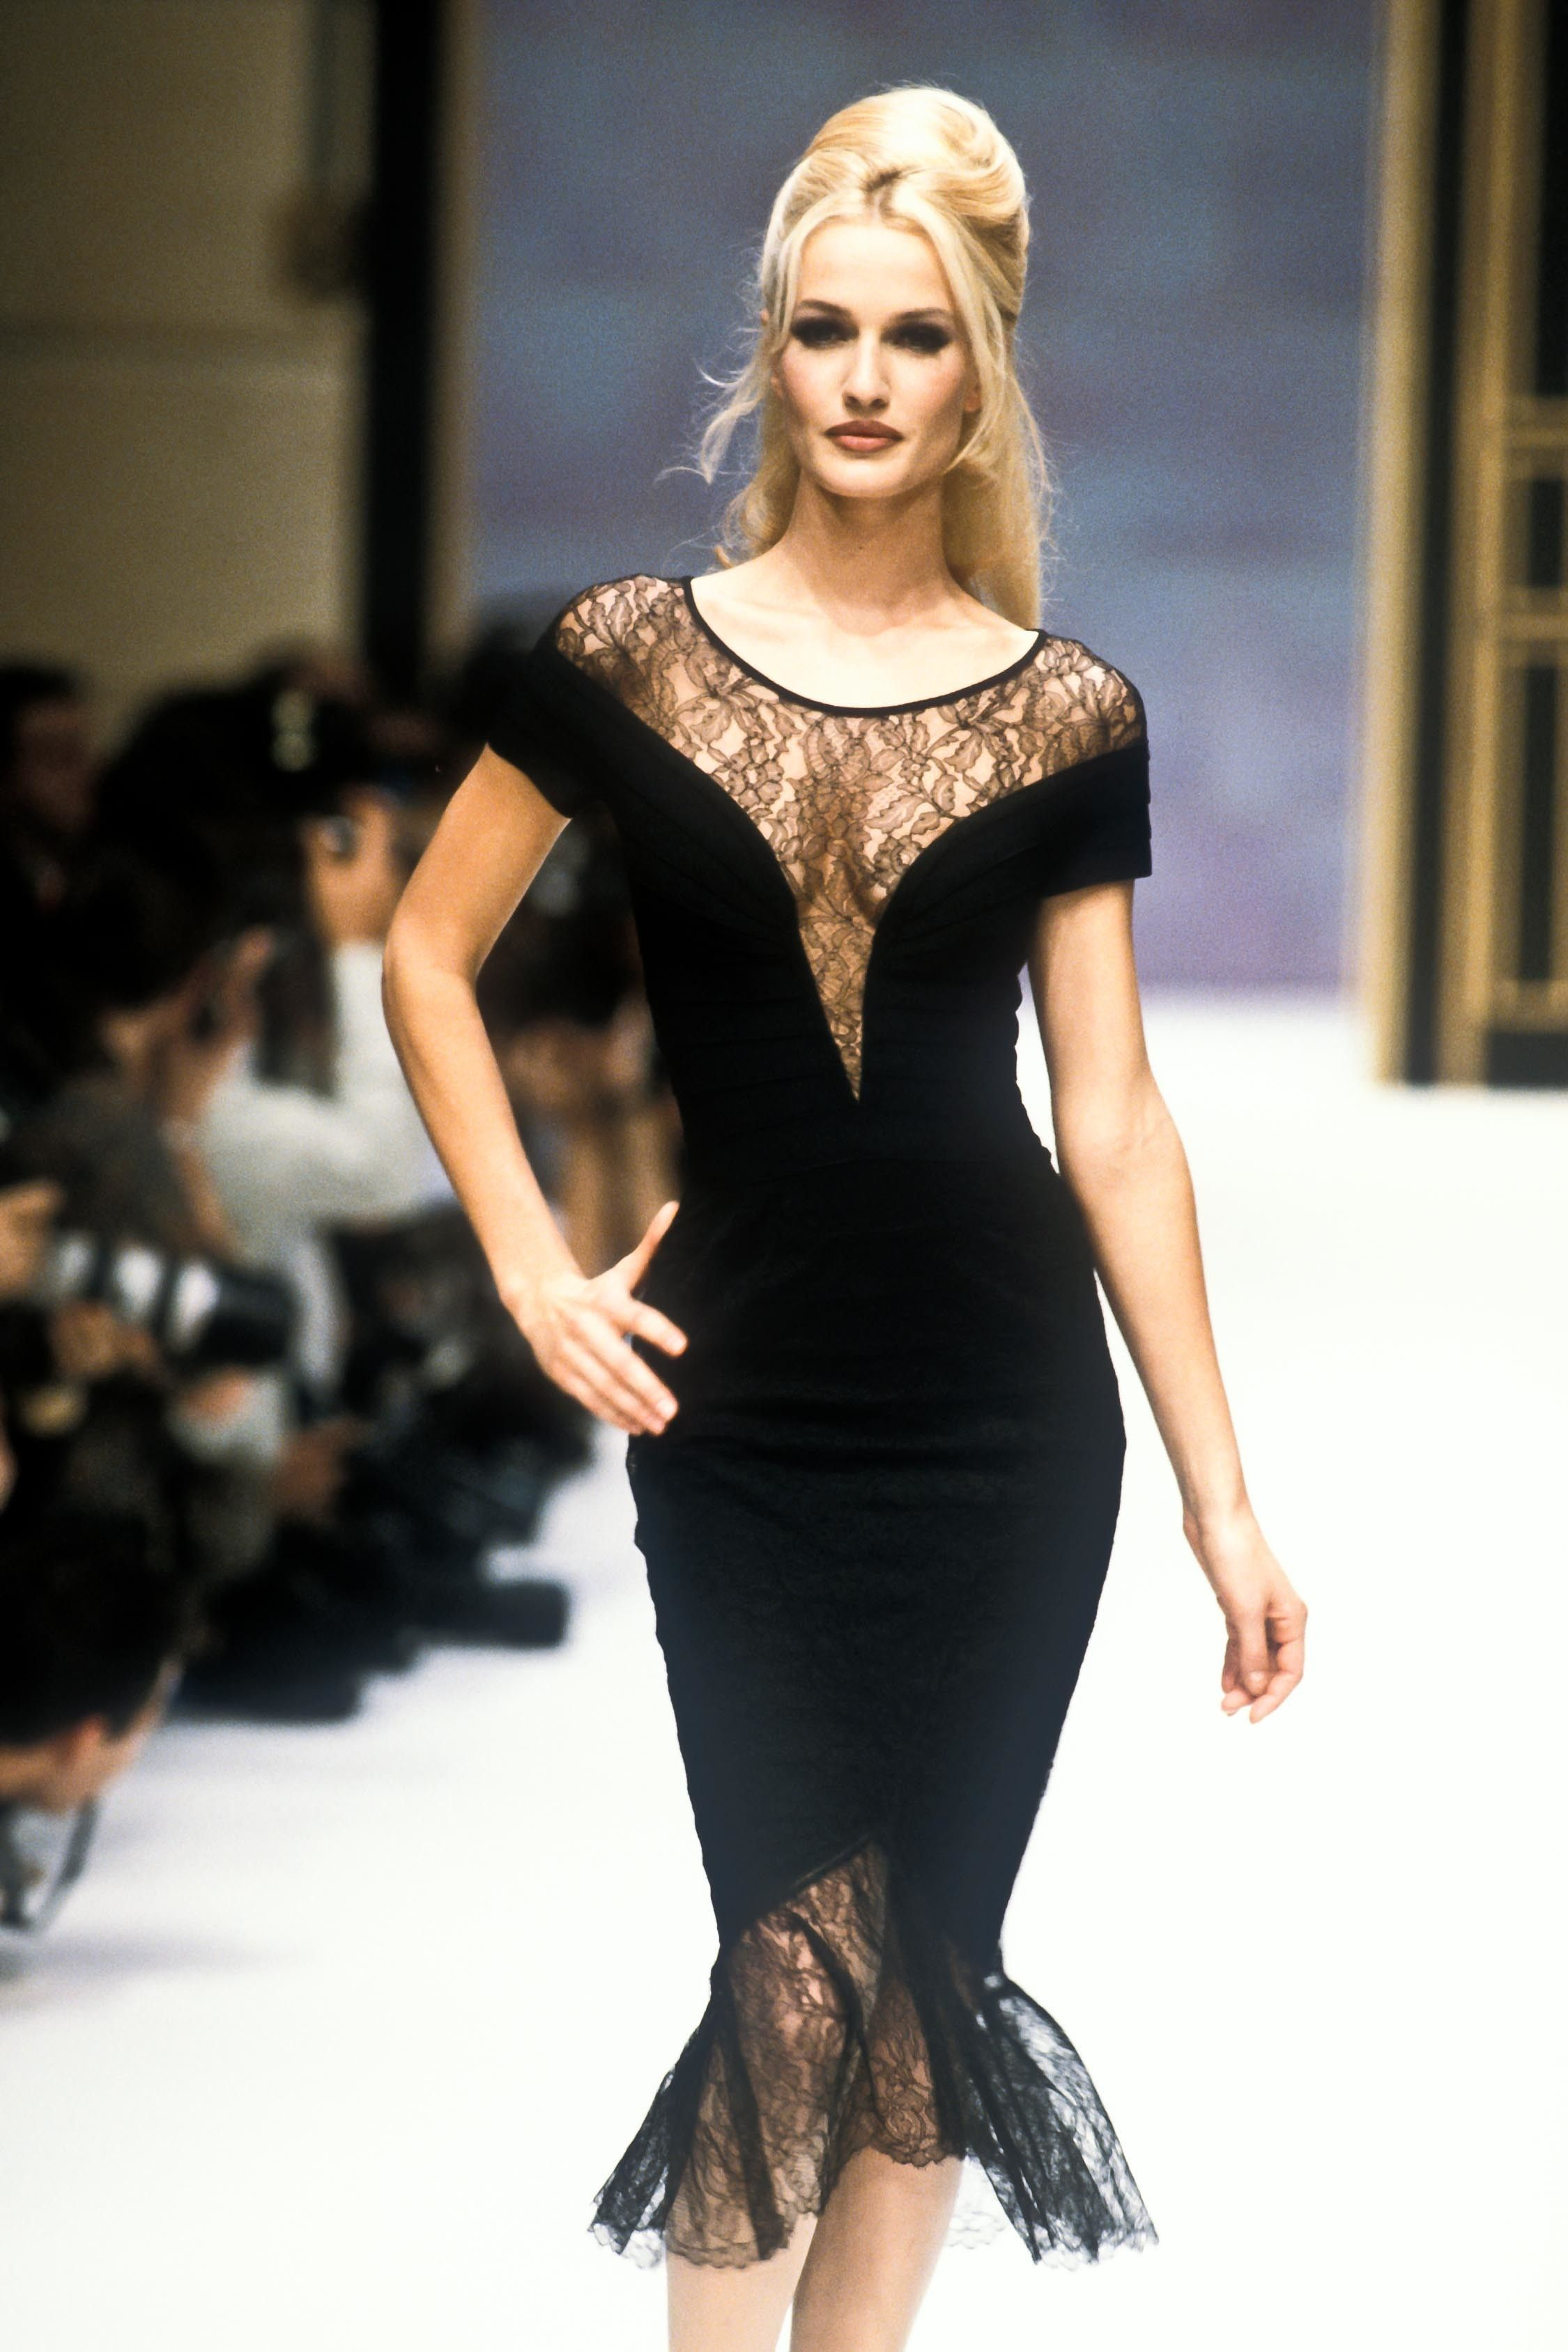 b30323e4f3e2 Herve Leger Ready-To-Wear Spring Summer 1996